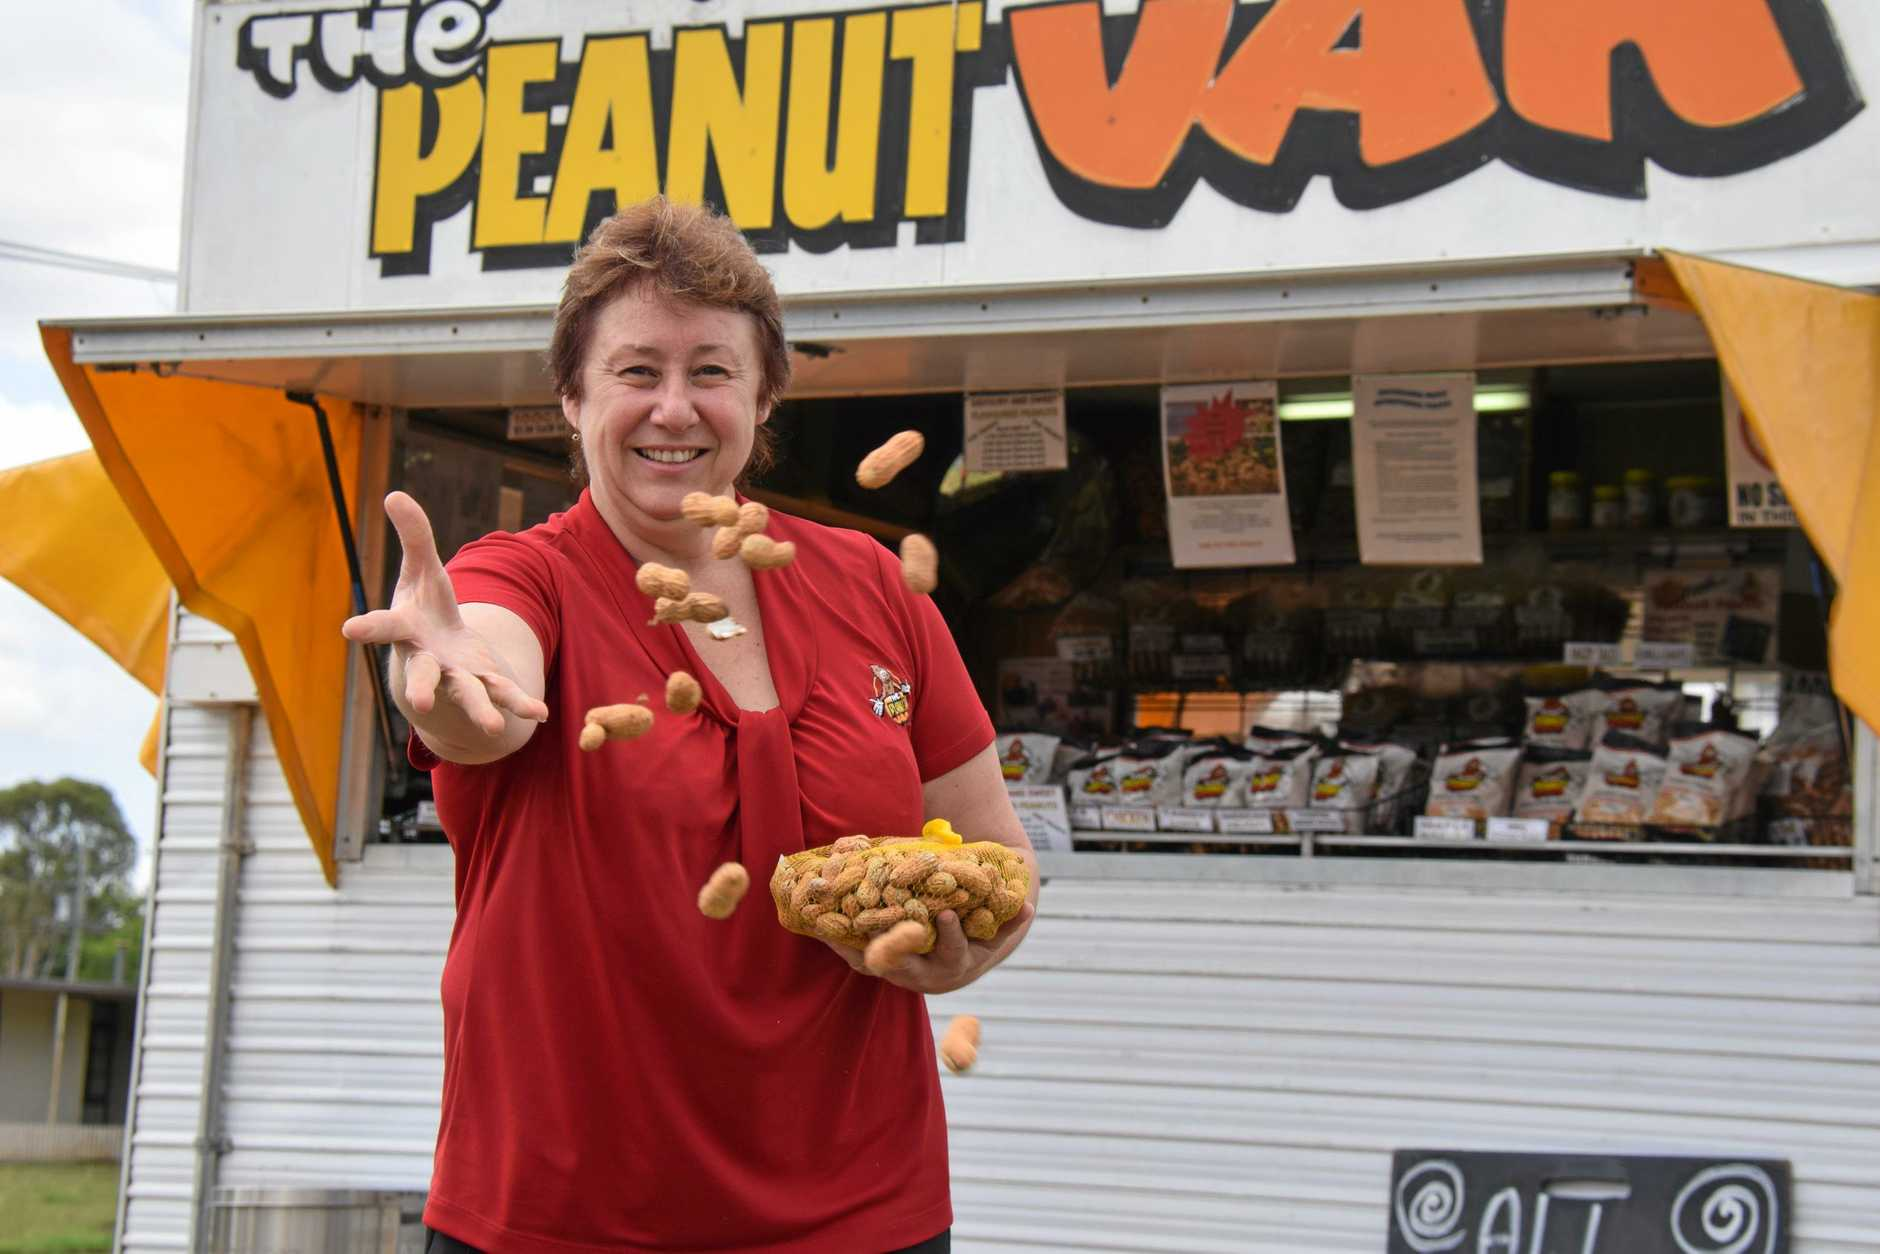 GONE NUTTY: Peanut Van's general manager, Rowena Dionysius is celebrating the popular Peanut Van's 50th birthday all year long.